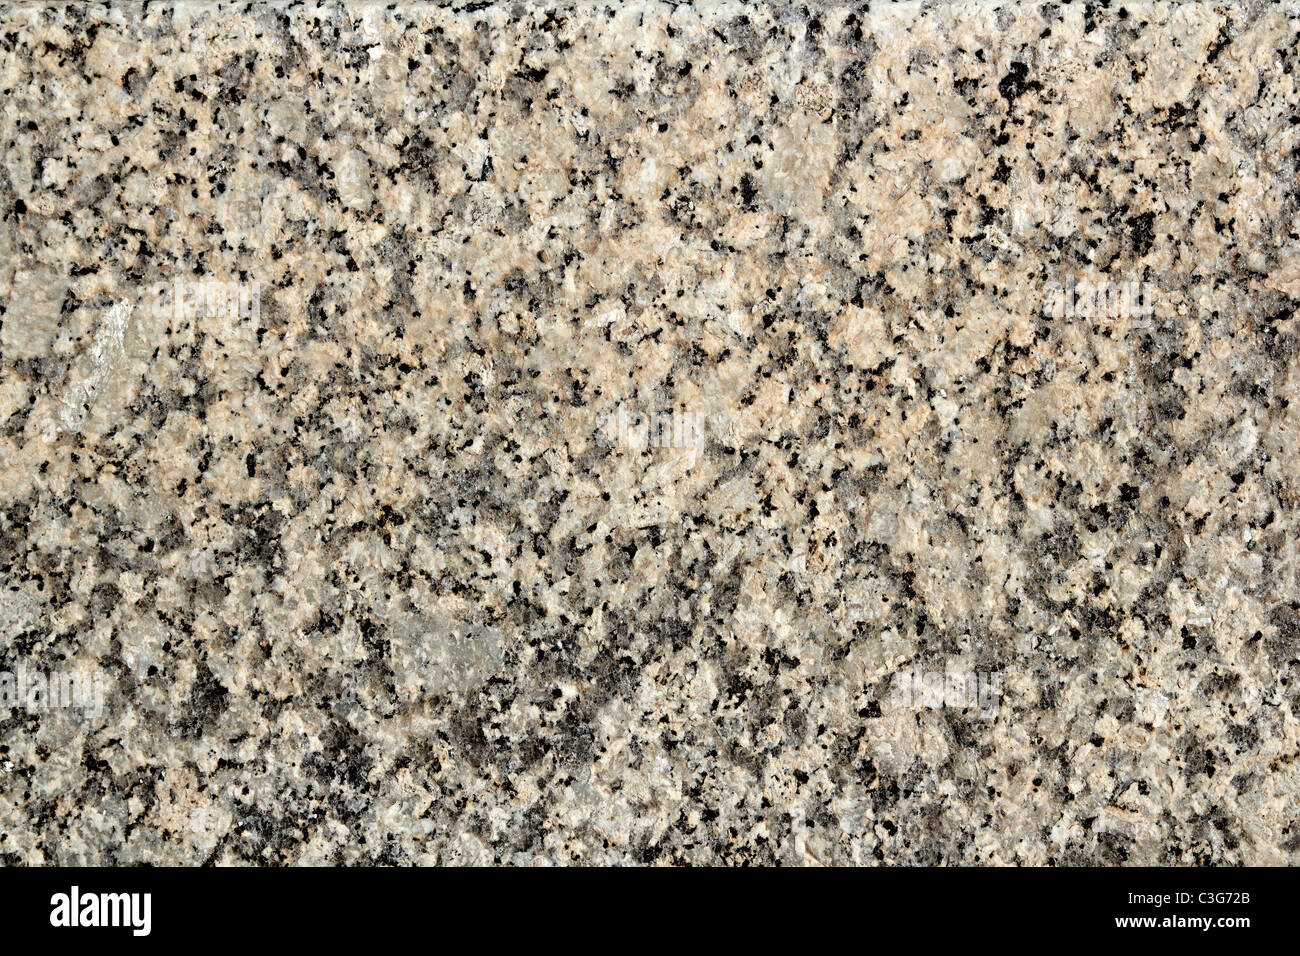 Pink To Gray Granite : Granite stone texture gray black white and soft pink